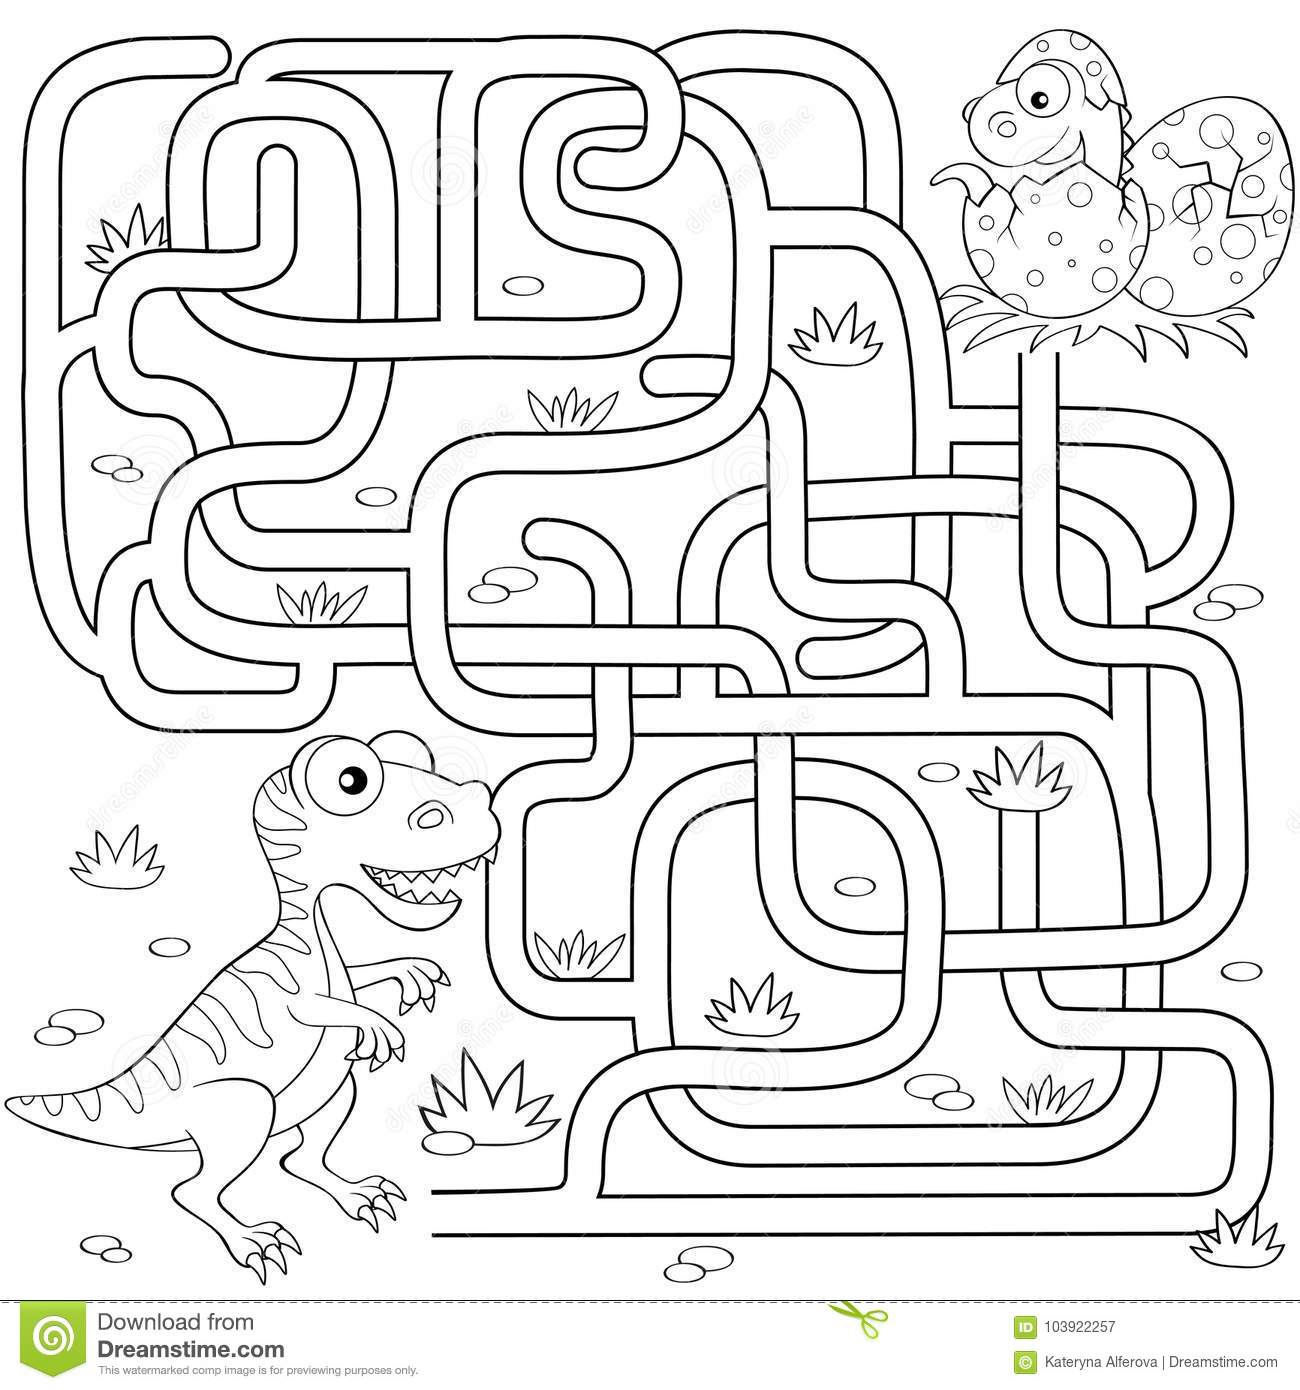 Help Dinosaur Find Path To Nest Labyrinth Maze Game For